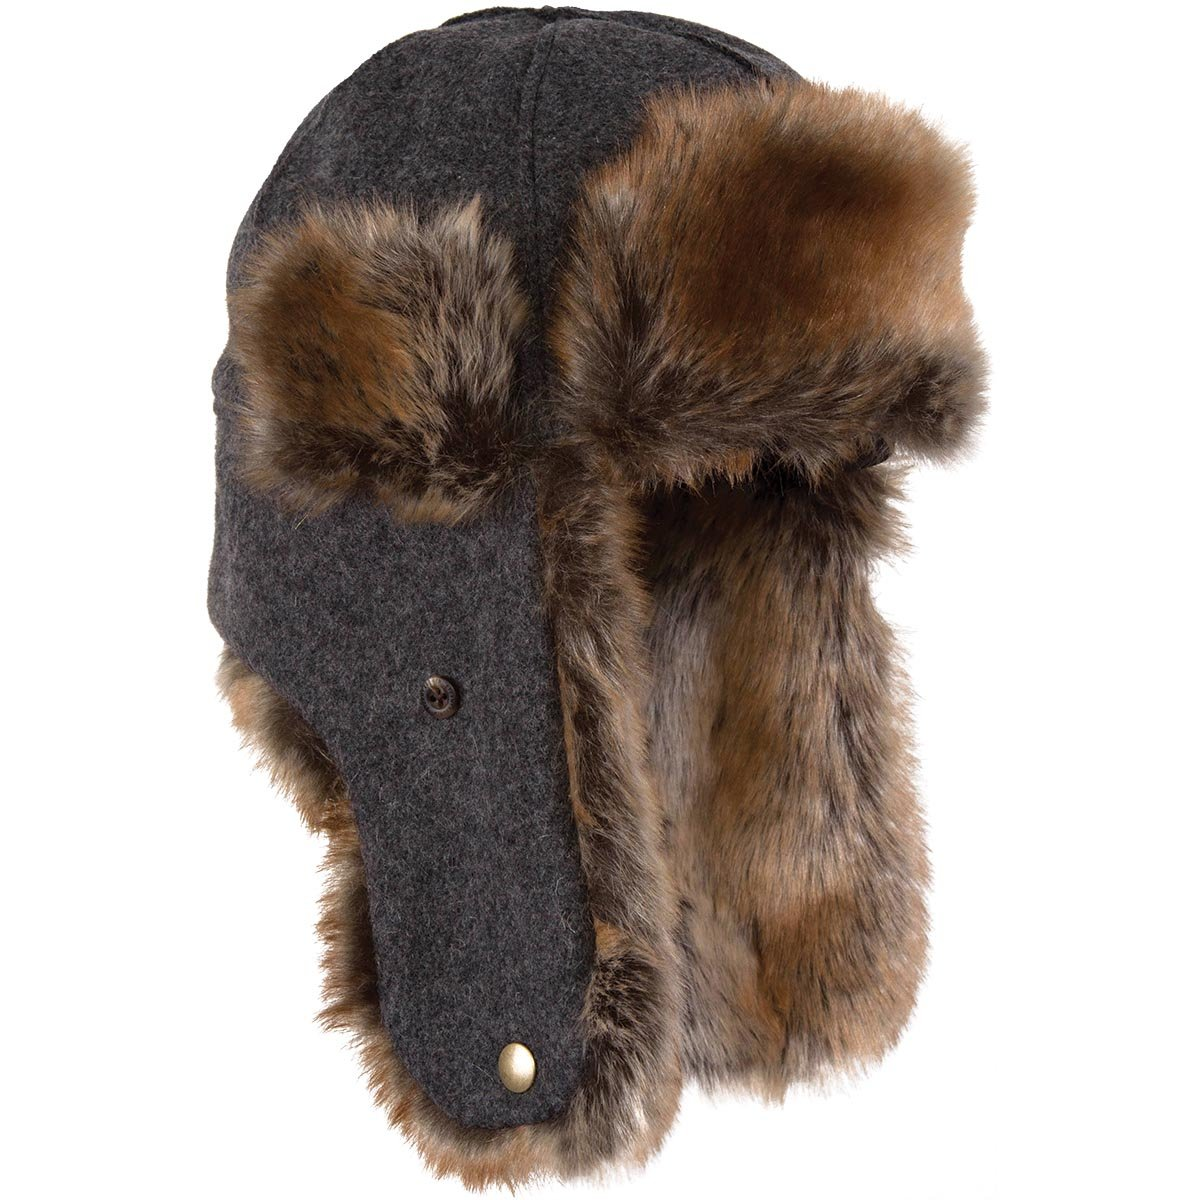 Stormy Kromer The Northwoods Trapper Hat, Color: Charcoal, Size: Sm (51210-00004